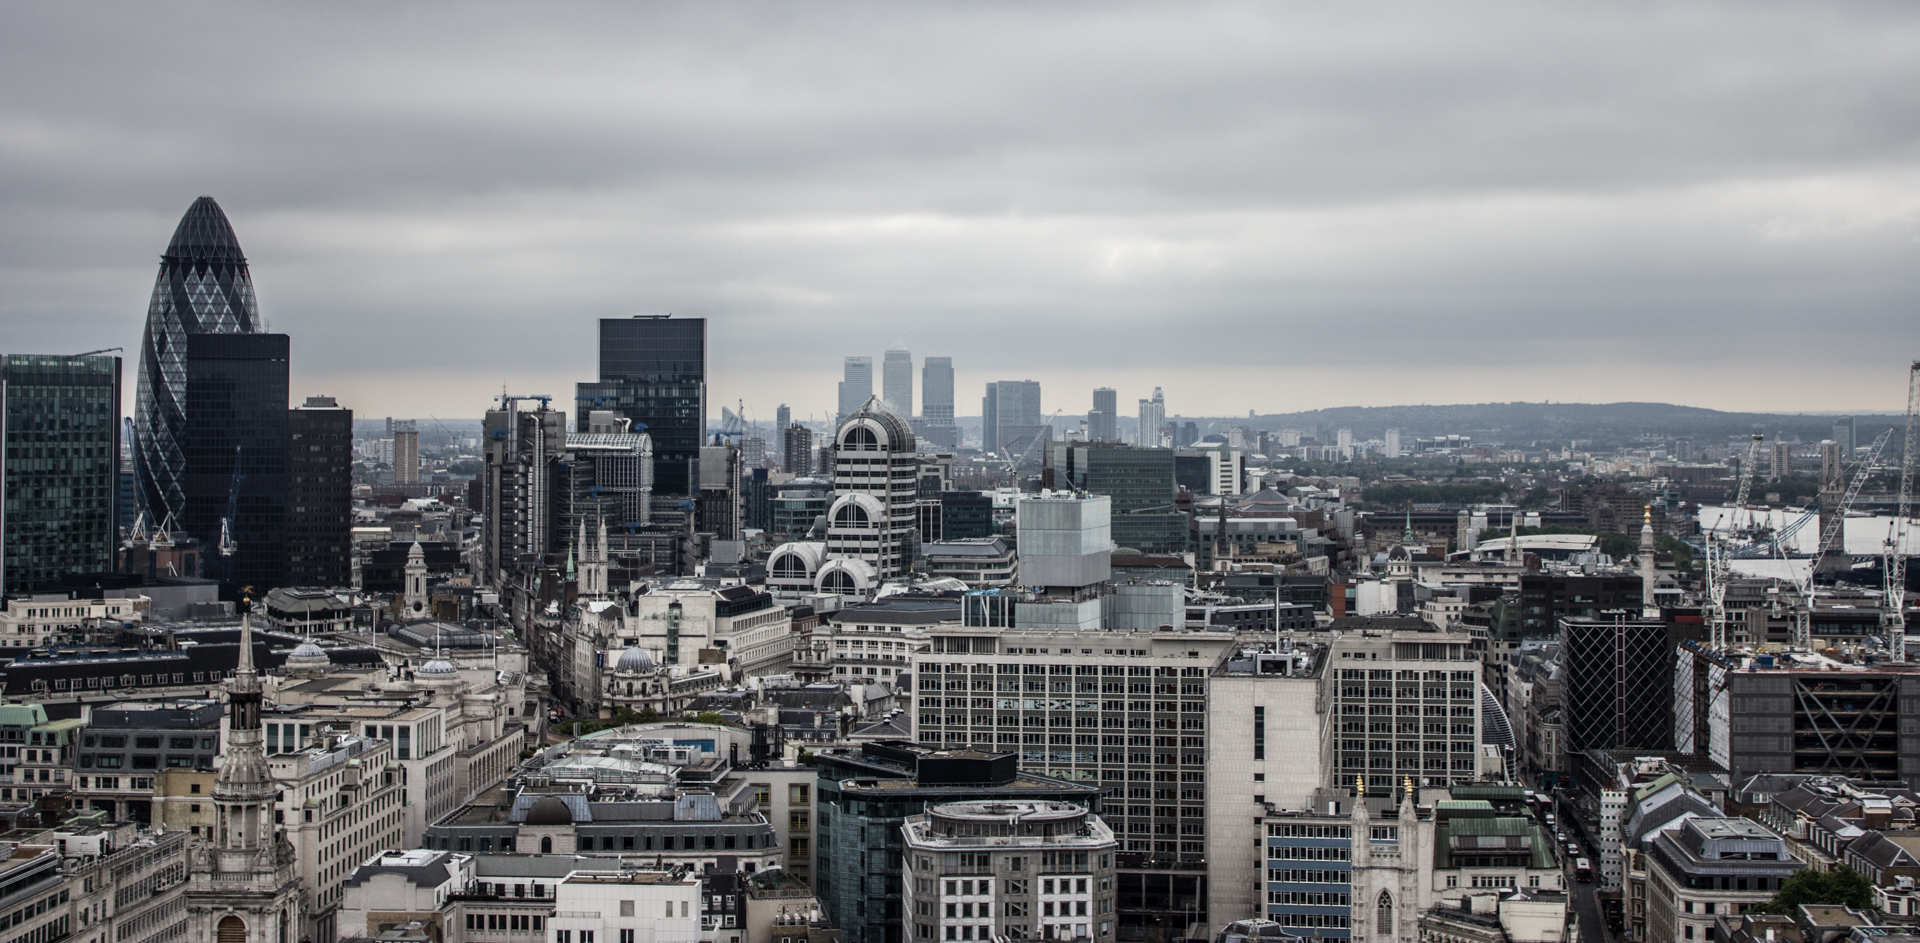 The London skyline from St. Paul's Cathedral on an overcast day